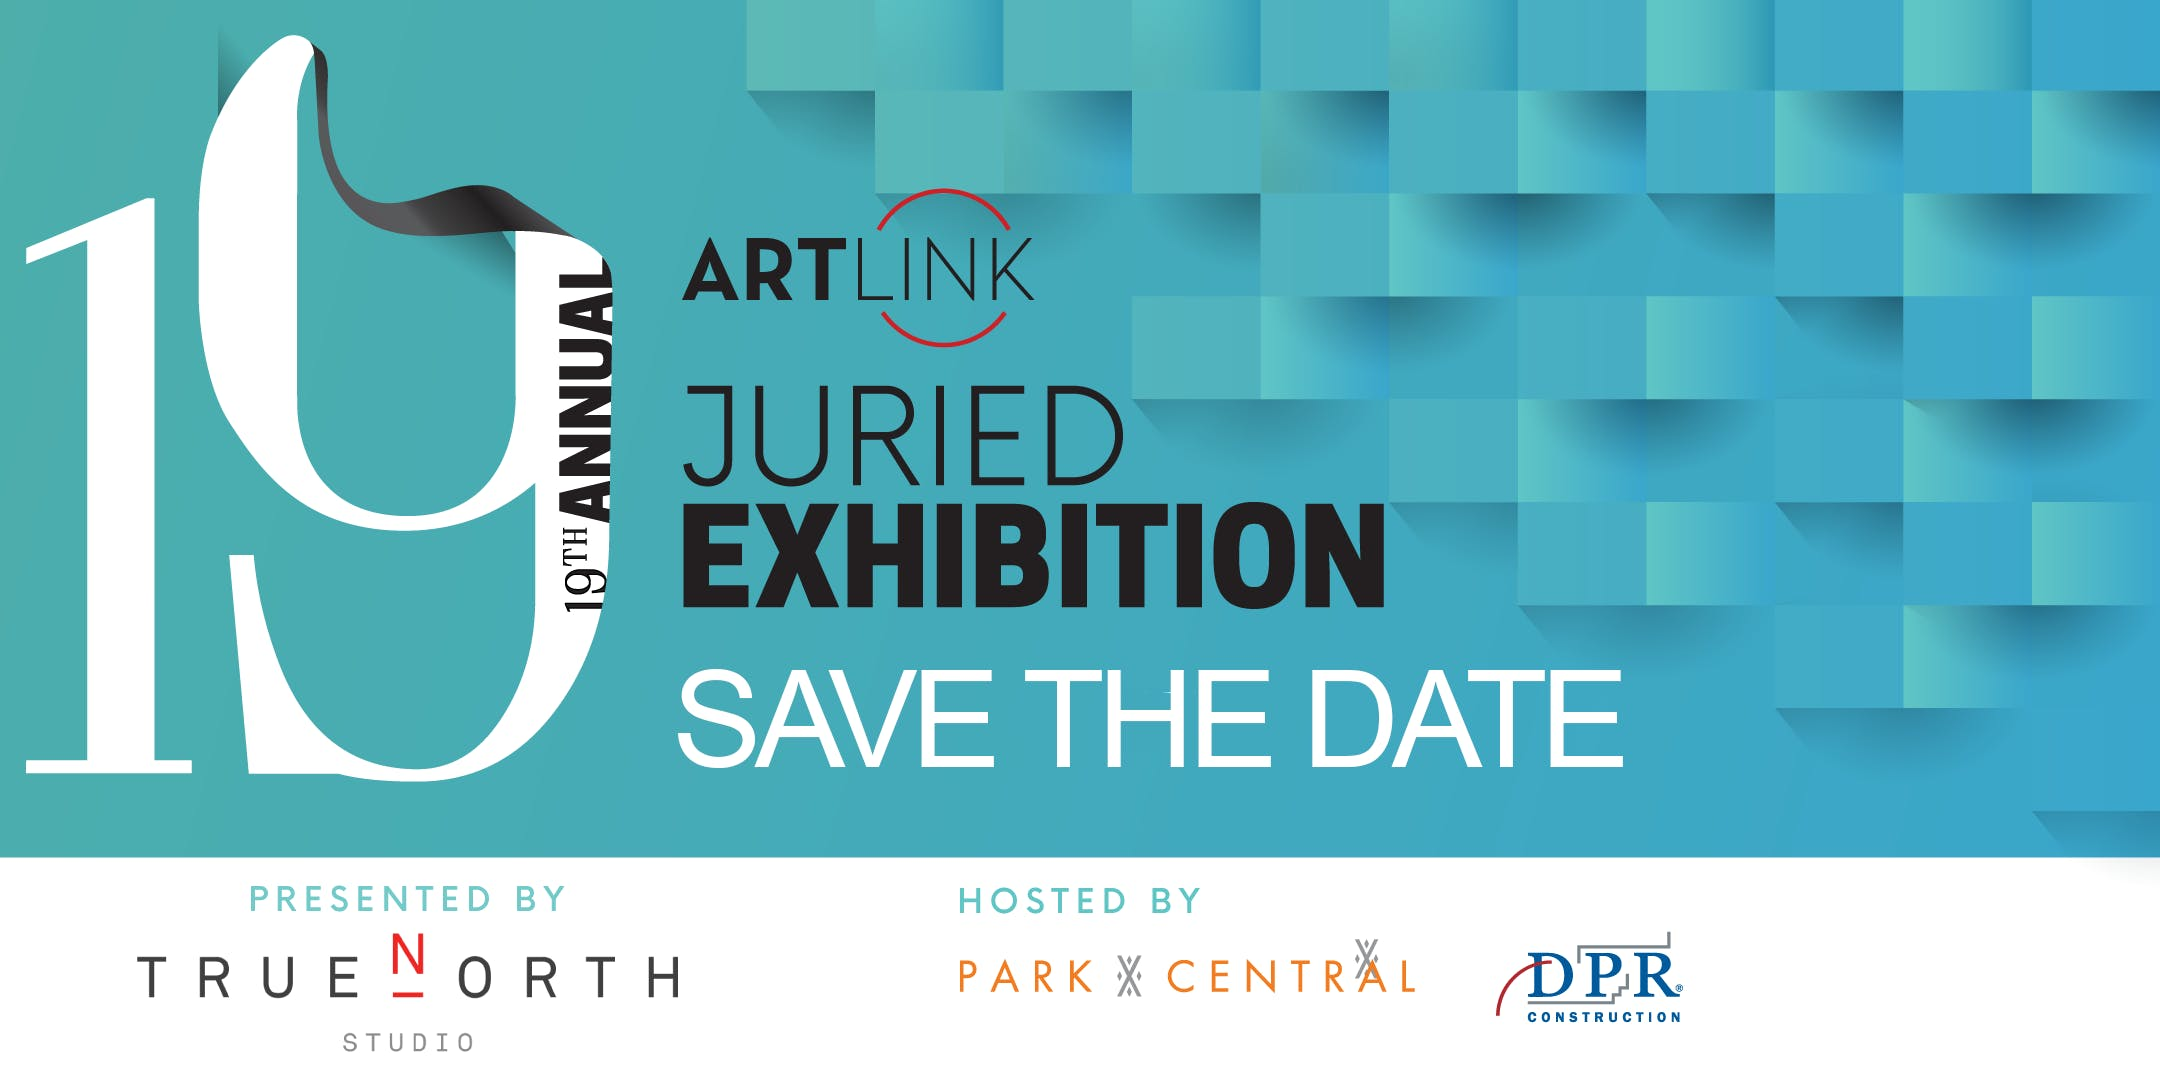 Artlink's 19th Annual Juried Exhibition